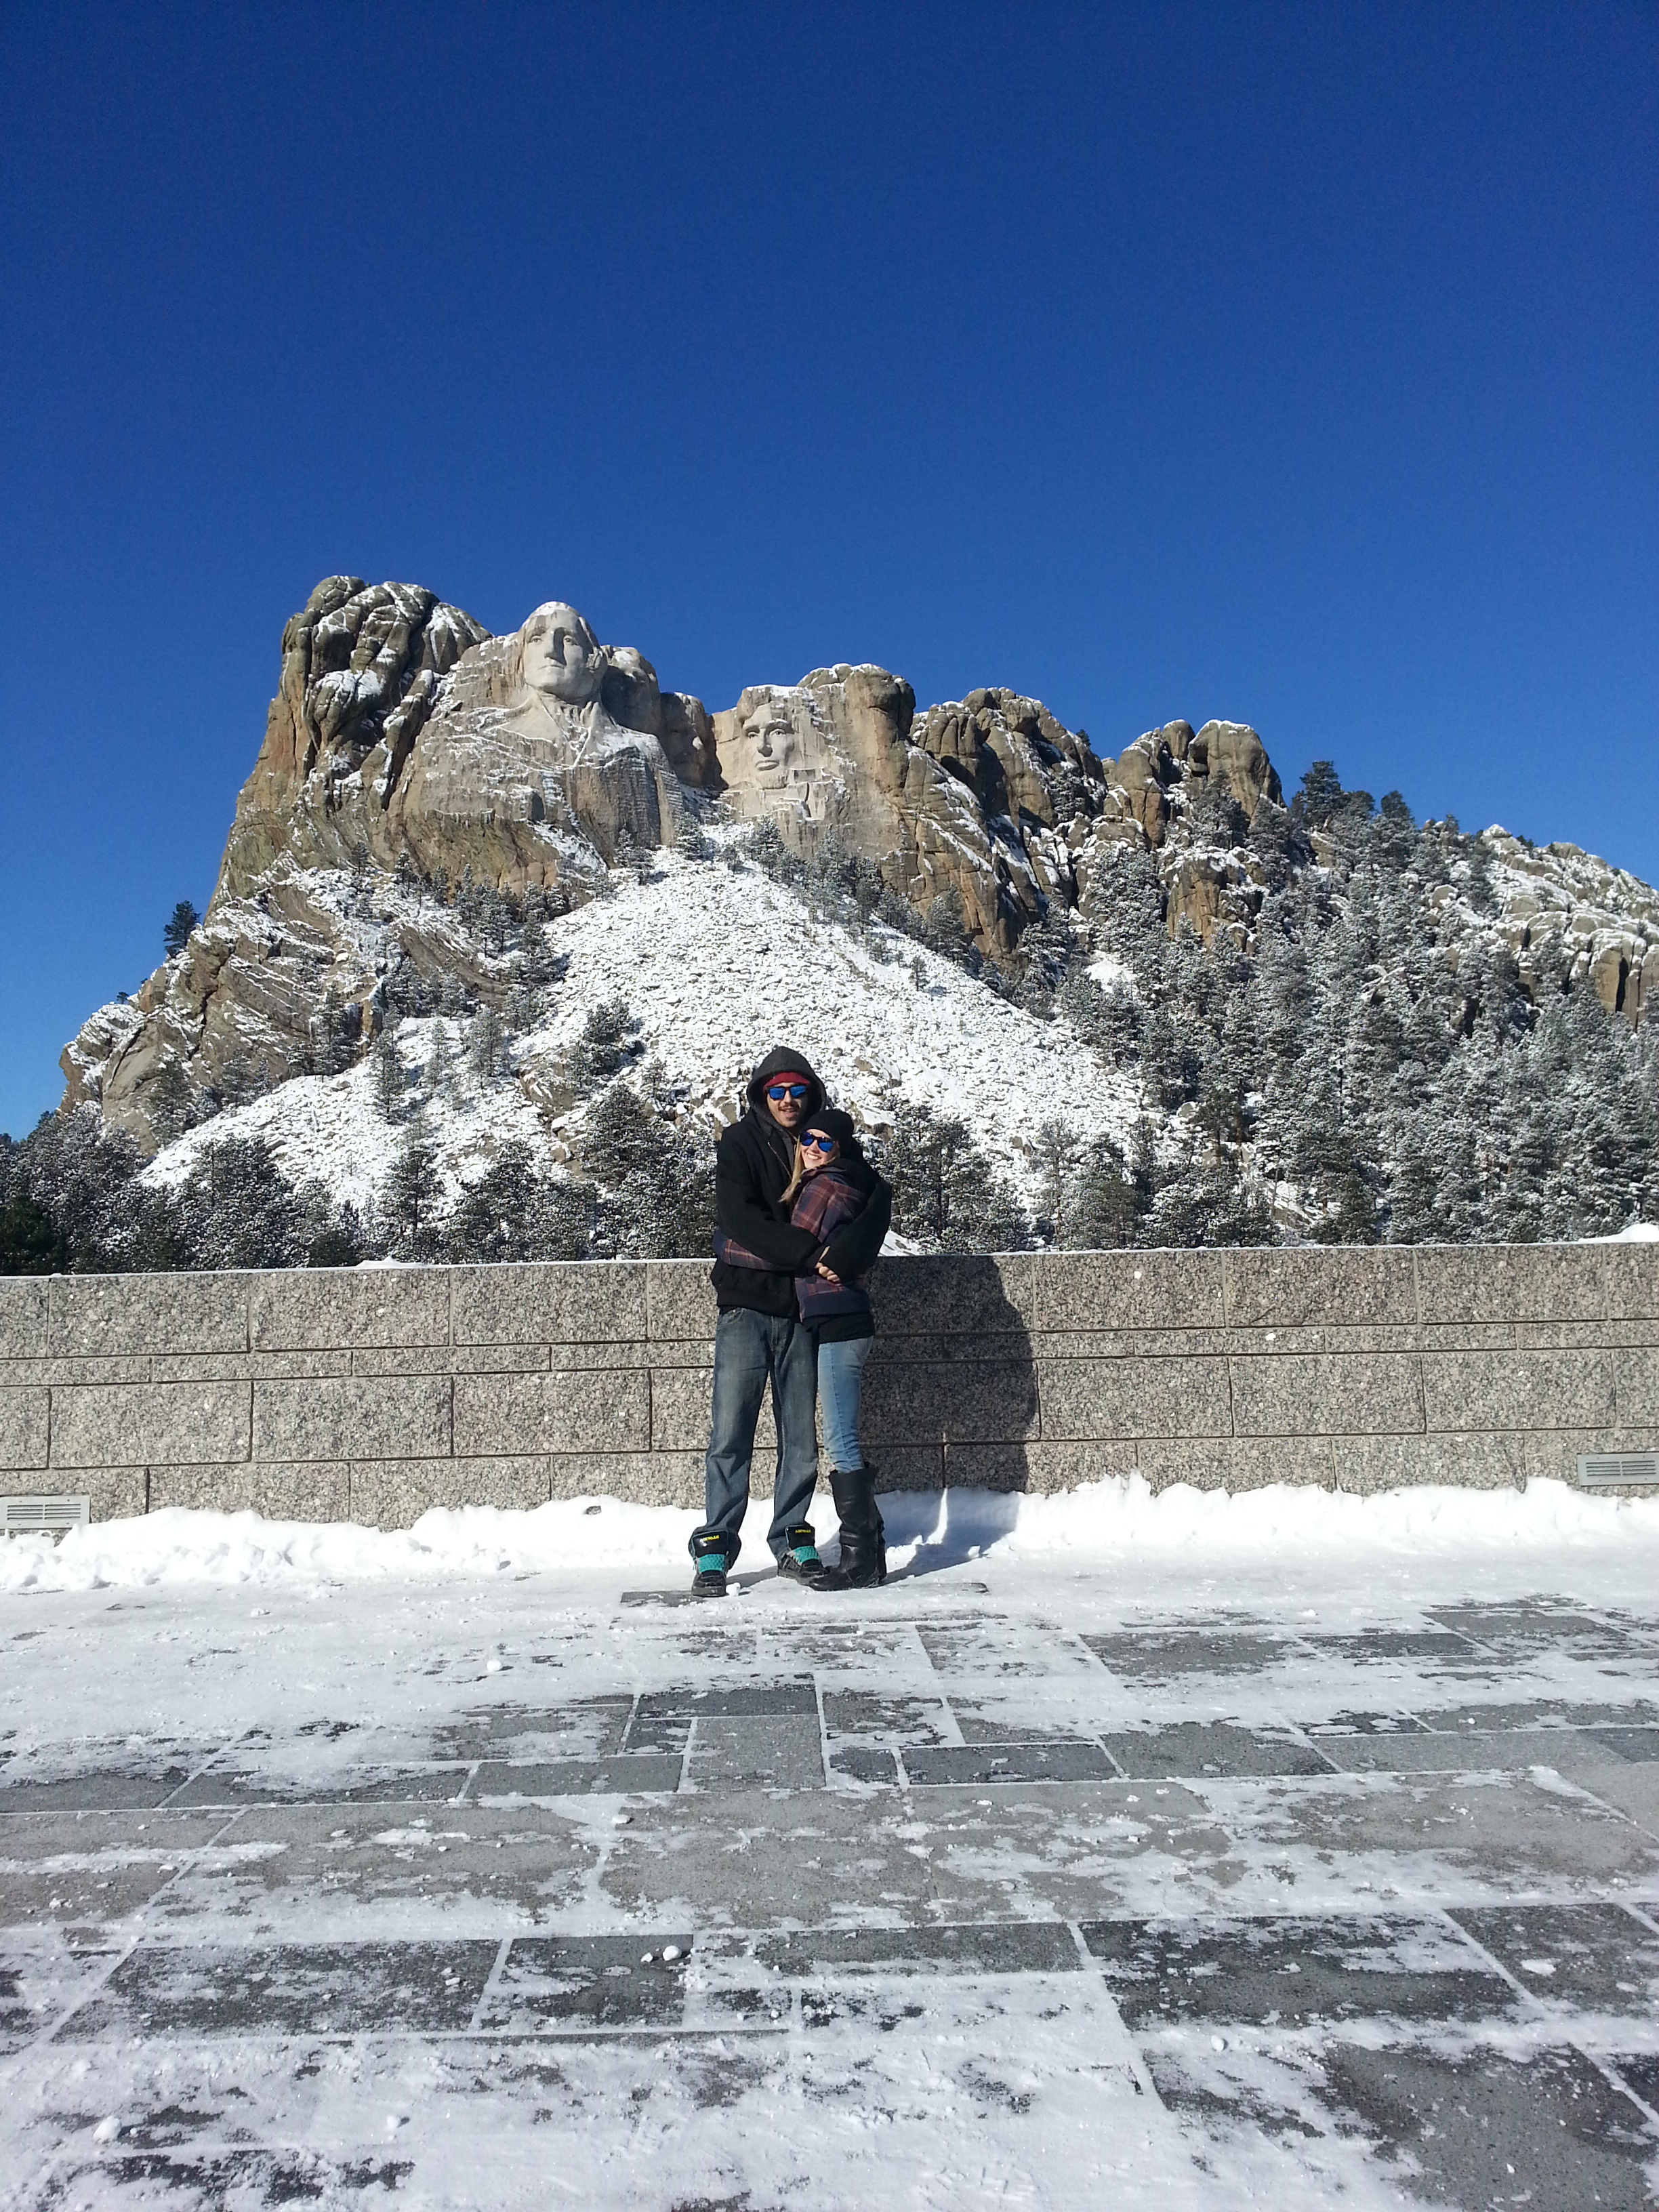 Brooke and Corey, Mt. Rushmore, SD